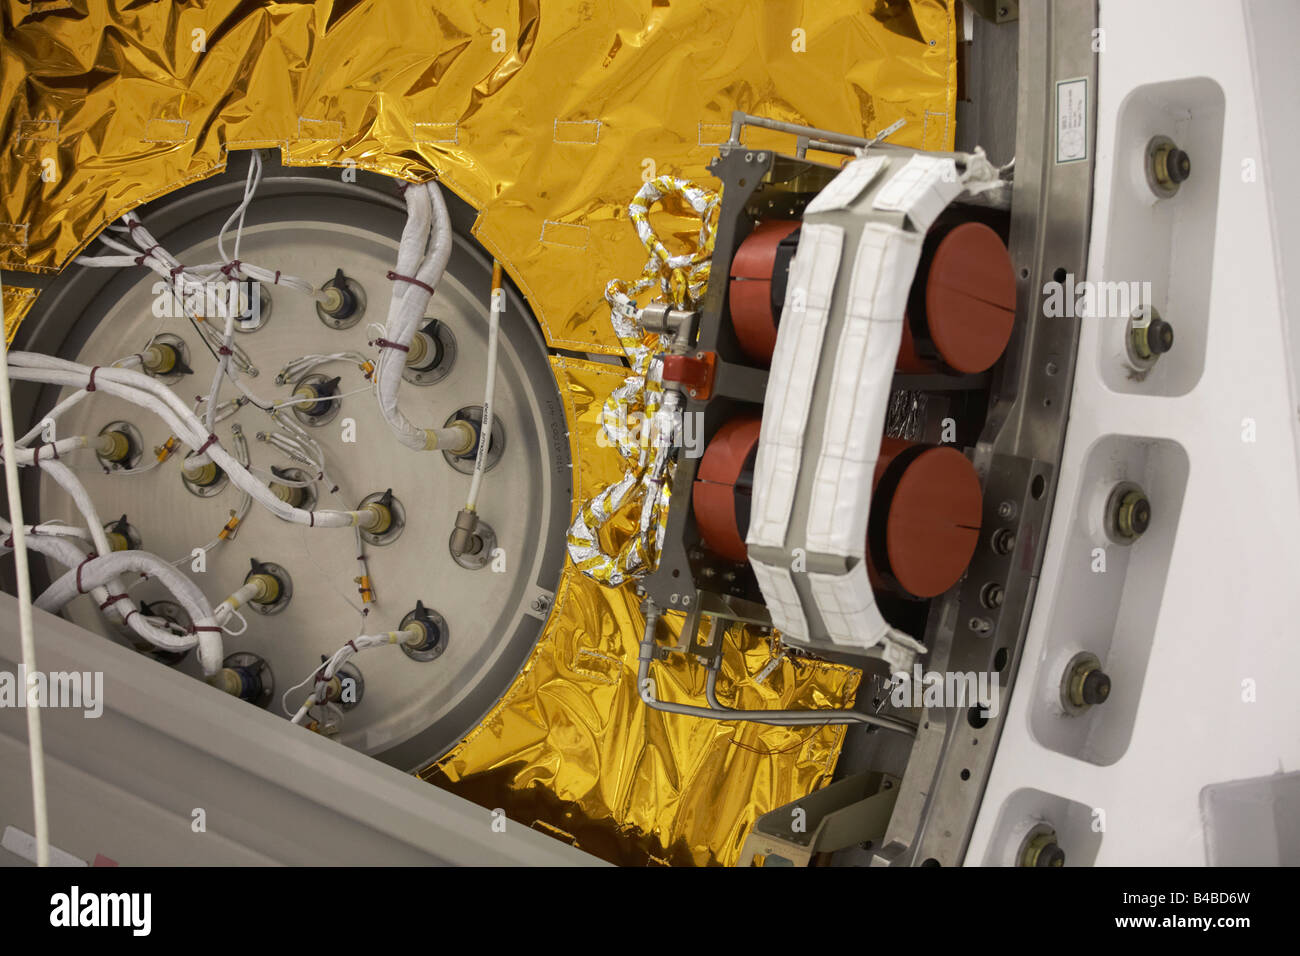 Solar foil detail of European Space Agency's Automated Transfer Vehicle (ATV) Jules Verne module constructed - Stock Image